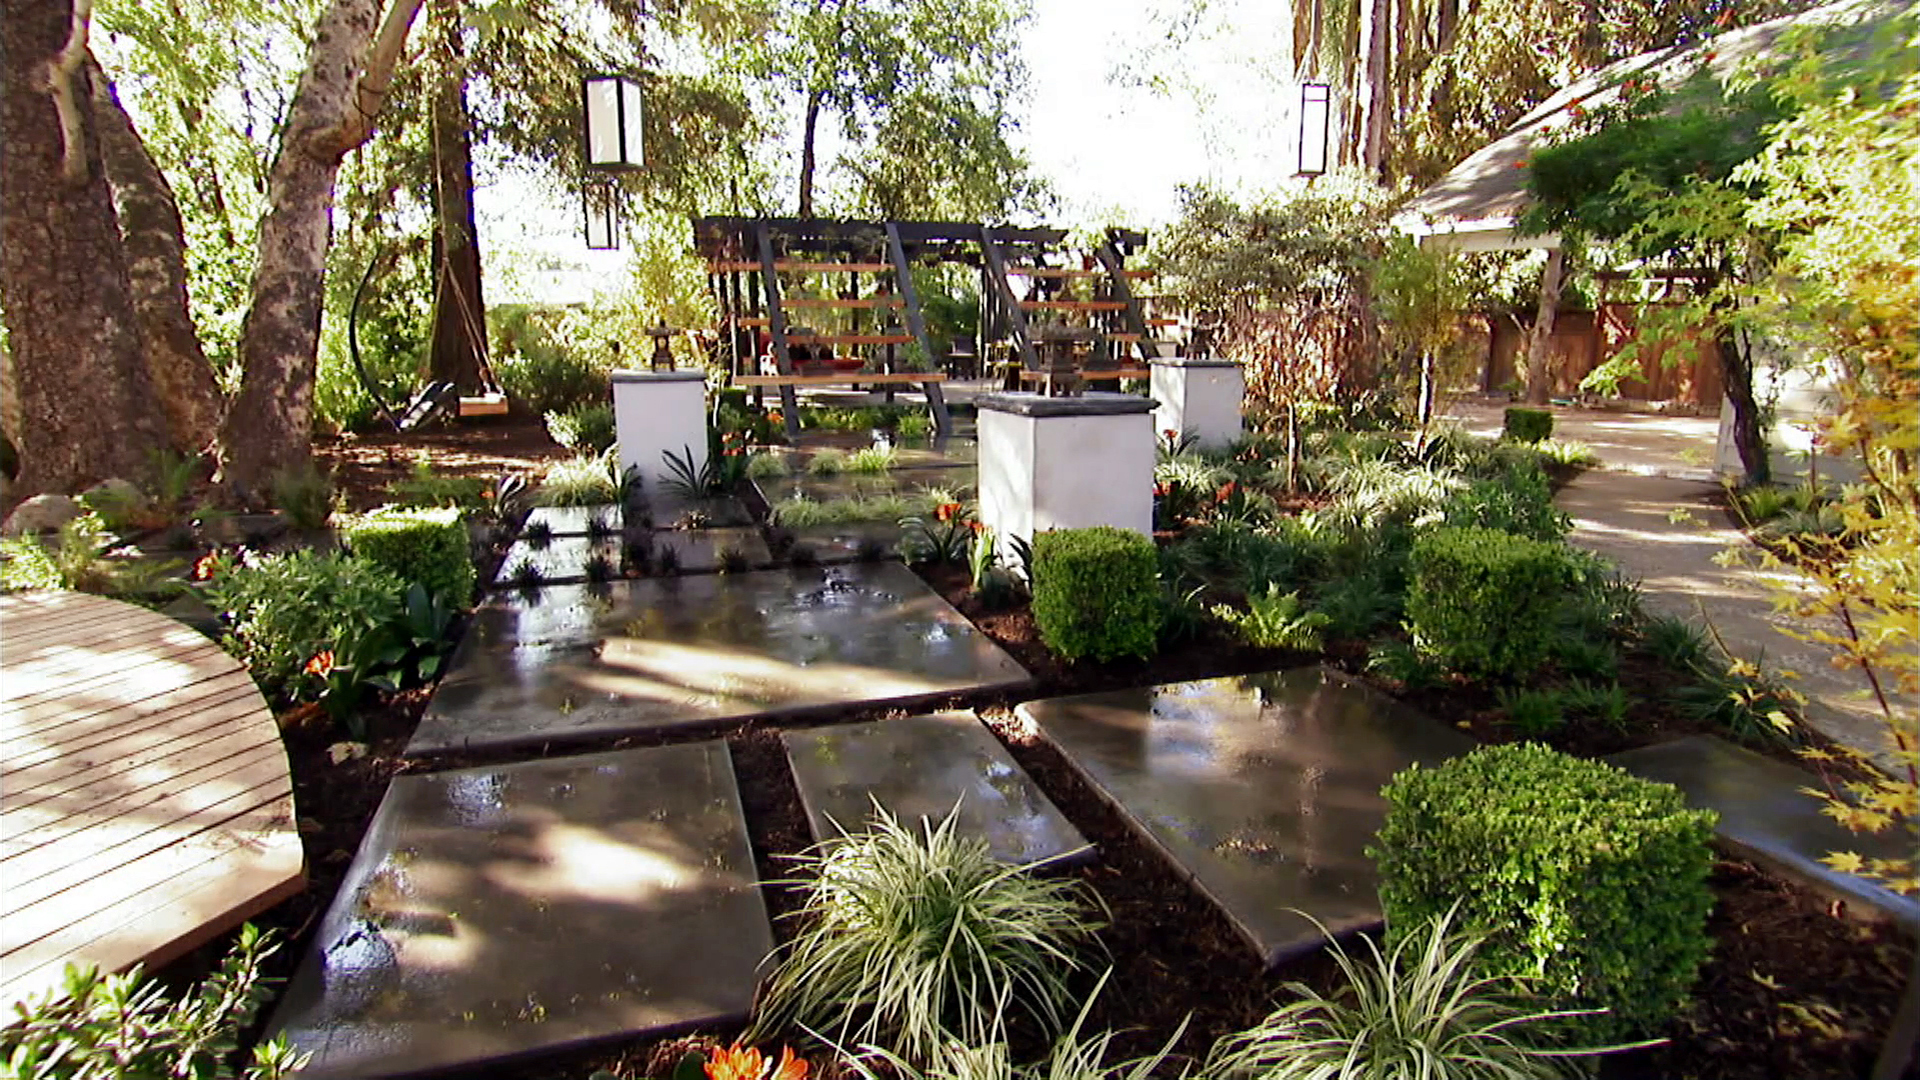 Zen Inspired Backyard Makeover | The Outdoor Room With Jamie Durie on backyard ideas green, backyard ideas fun, backyard ideas japanese, backyard ideas wood, backyard ideas creative, backyard ideas modern, backyard ideas design, backyard ideas water,